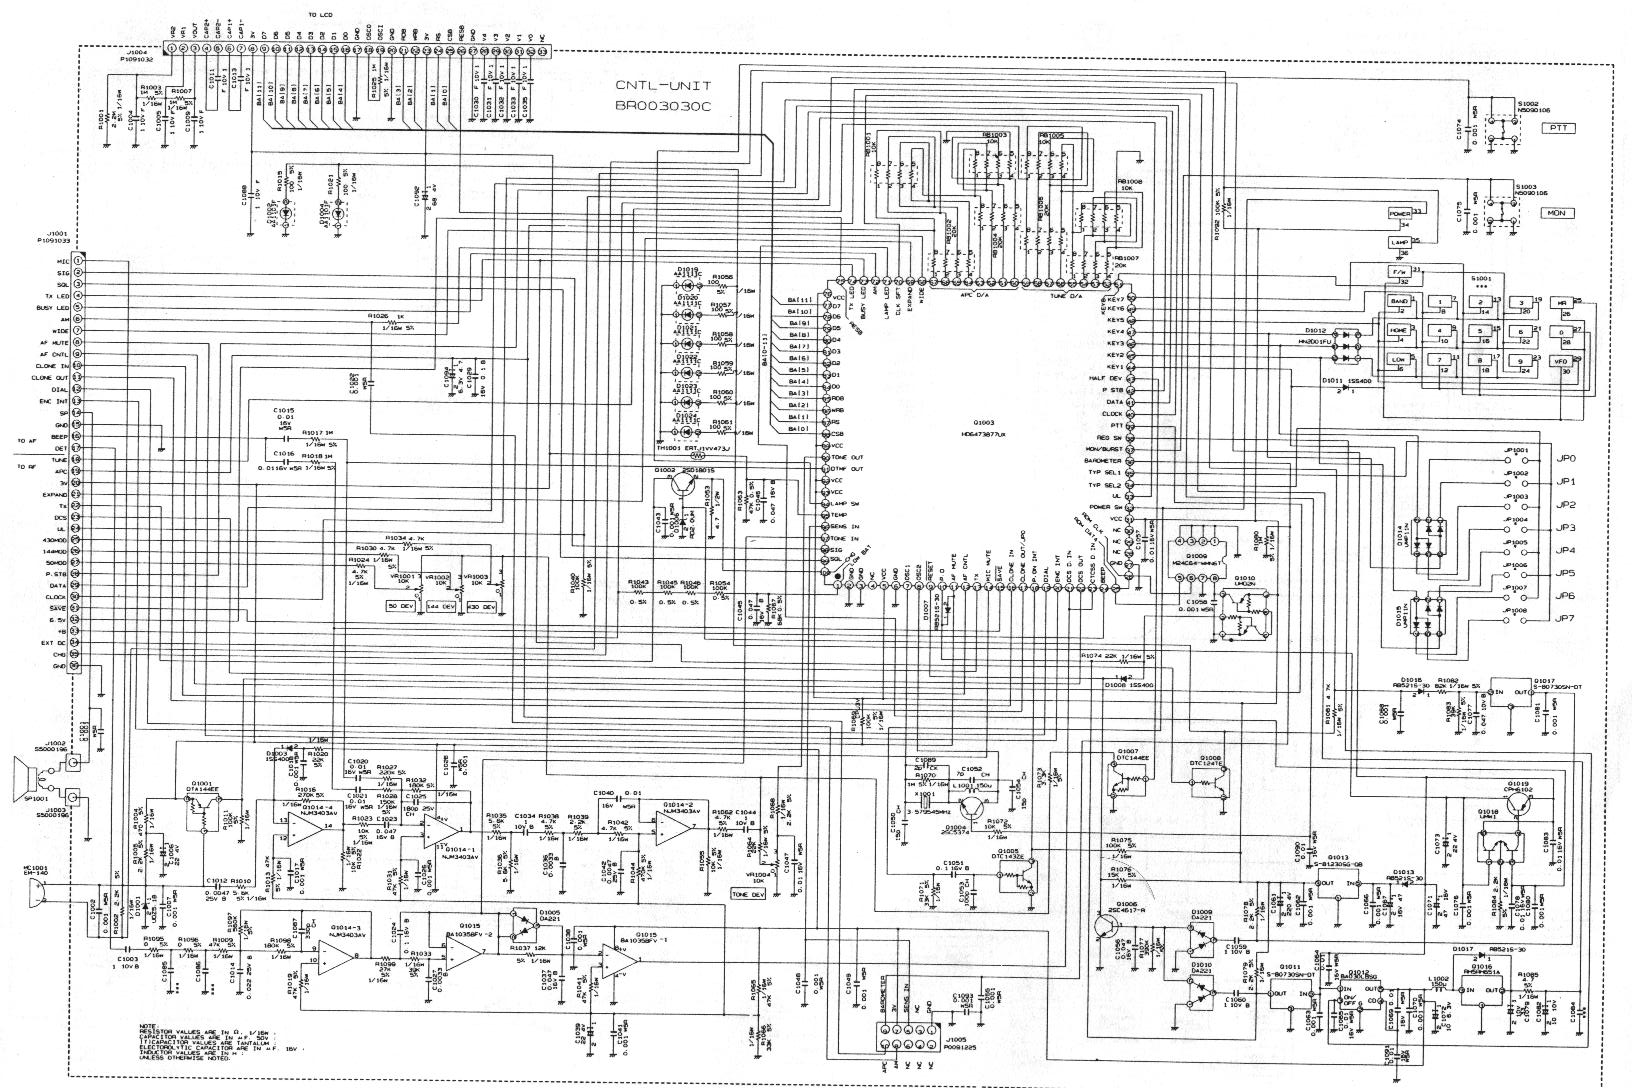 YAESU VX 5 Schematic b index of pub radio_manuals yaesu Yaesu G-450A at creativeand.co